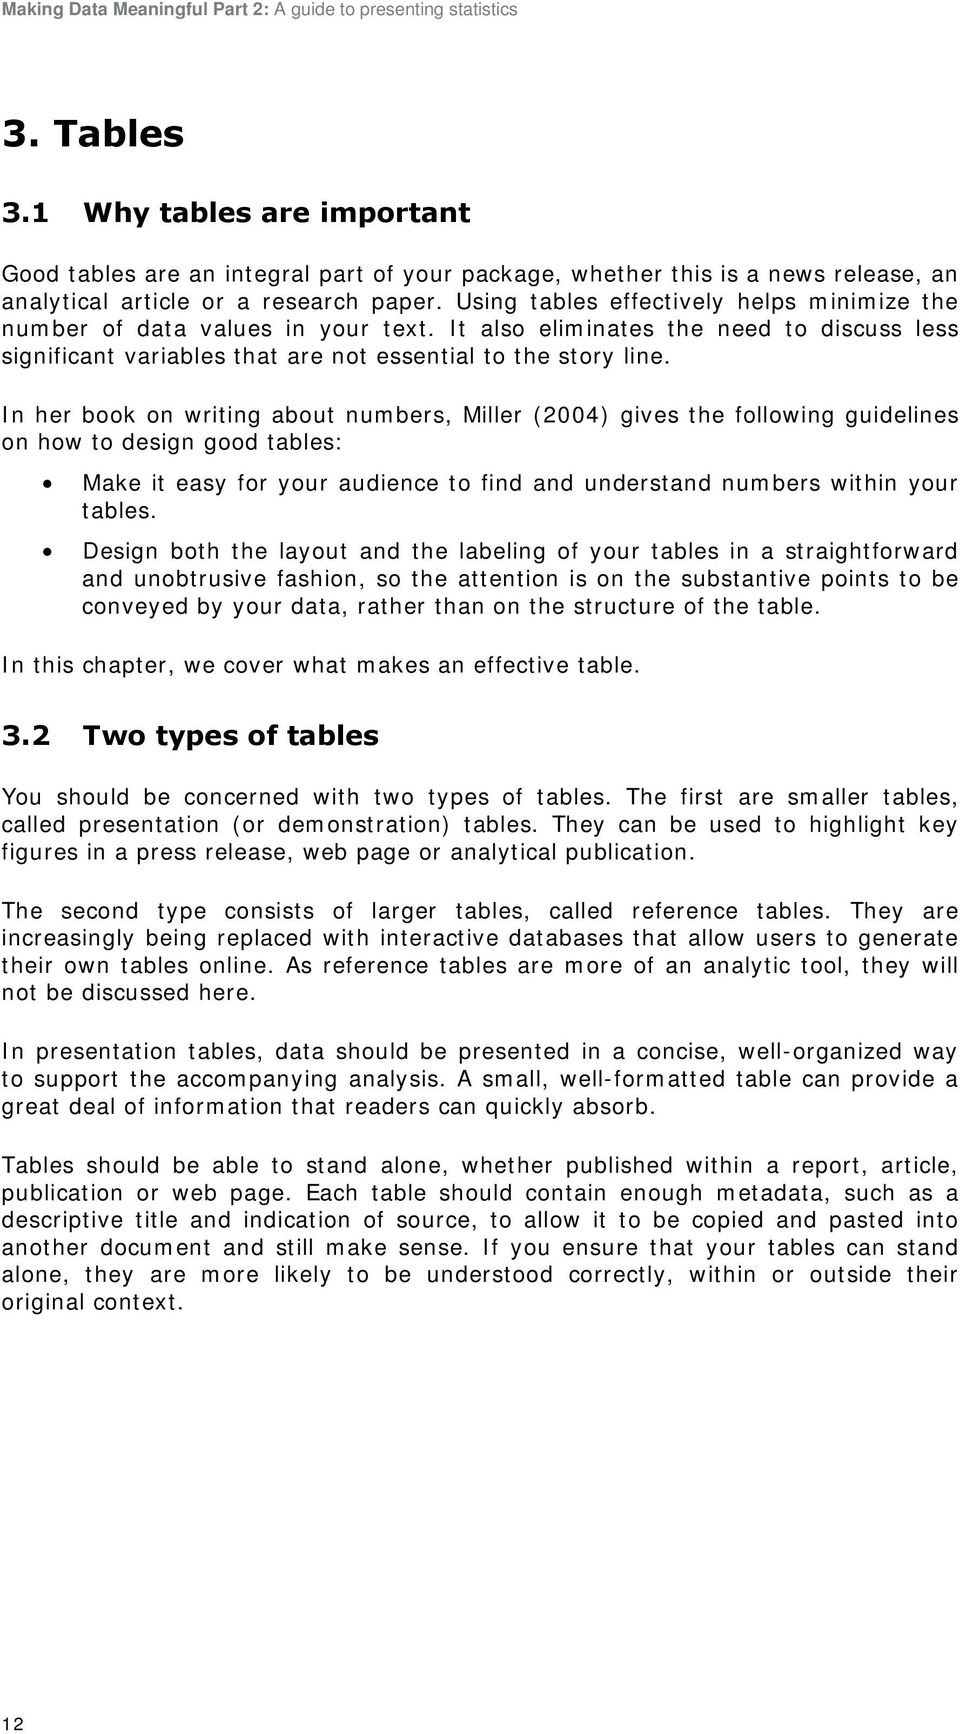 In her book on writing about numbers, Miller (2004) gives the following guidelines on how to design good tables: Make it easy for your audience to find and understand numbers within your tables.